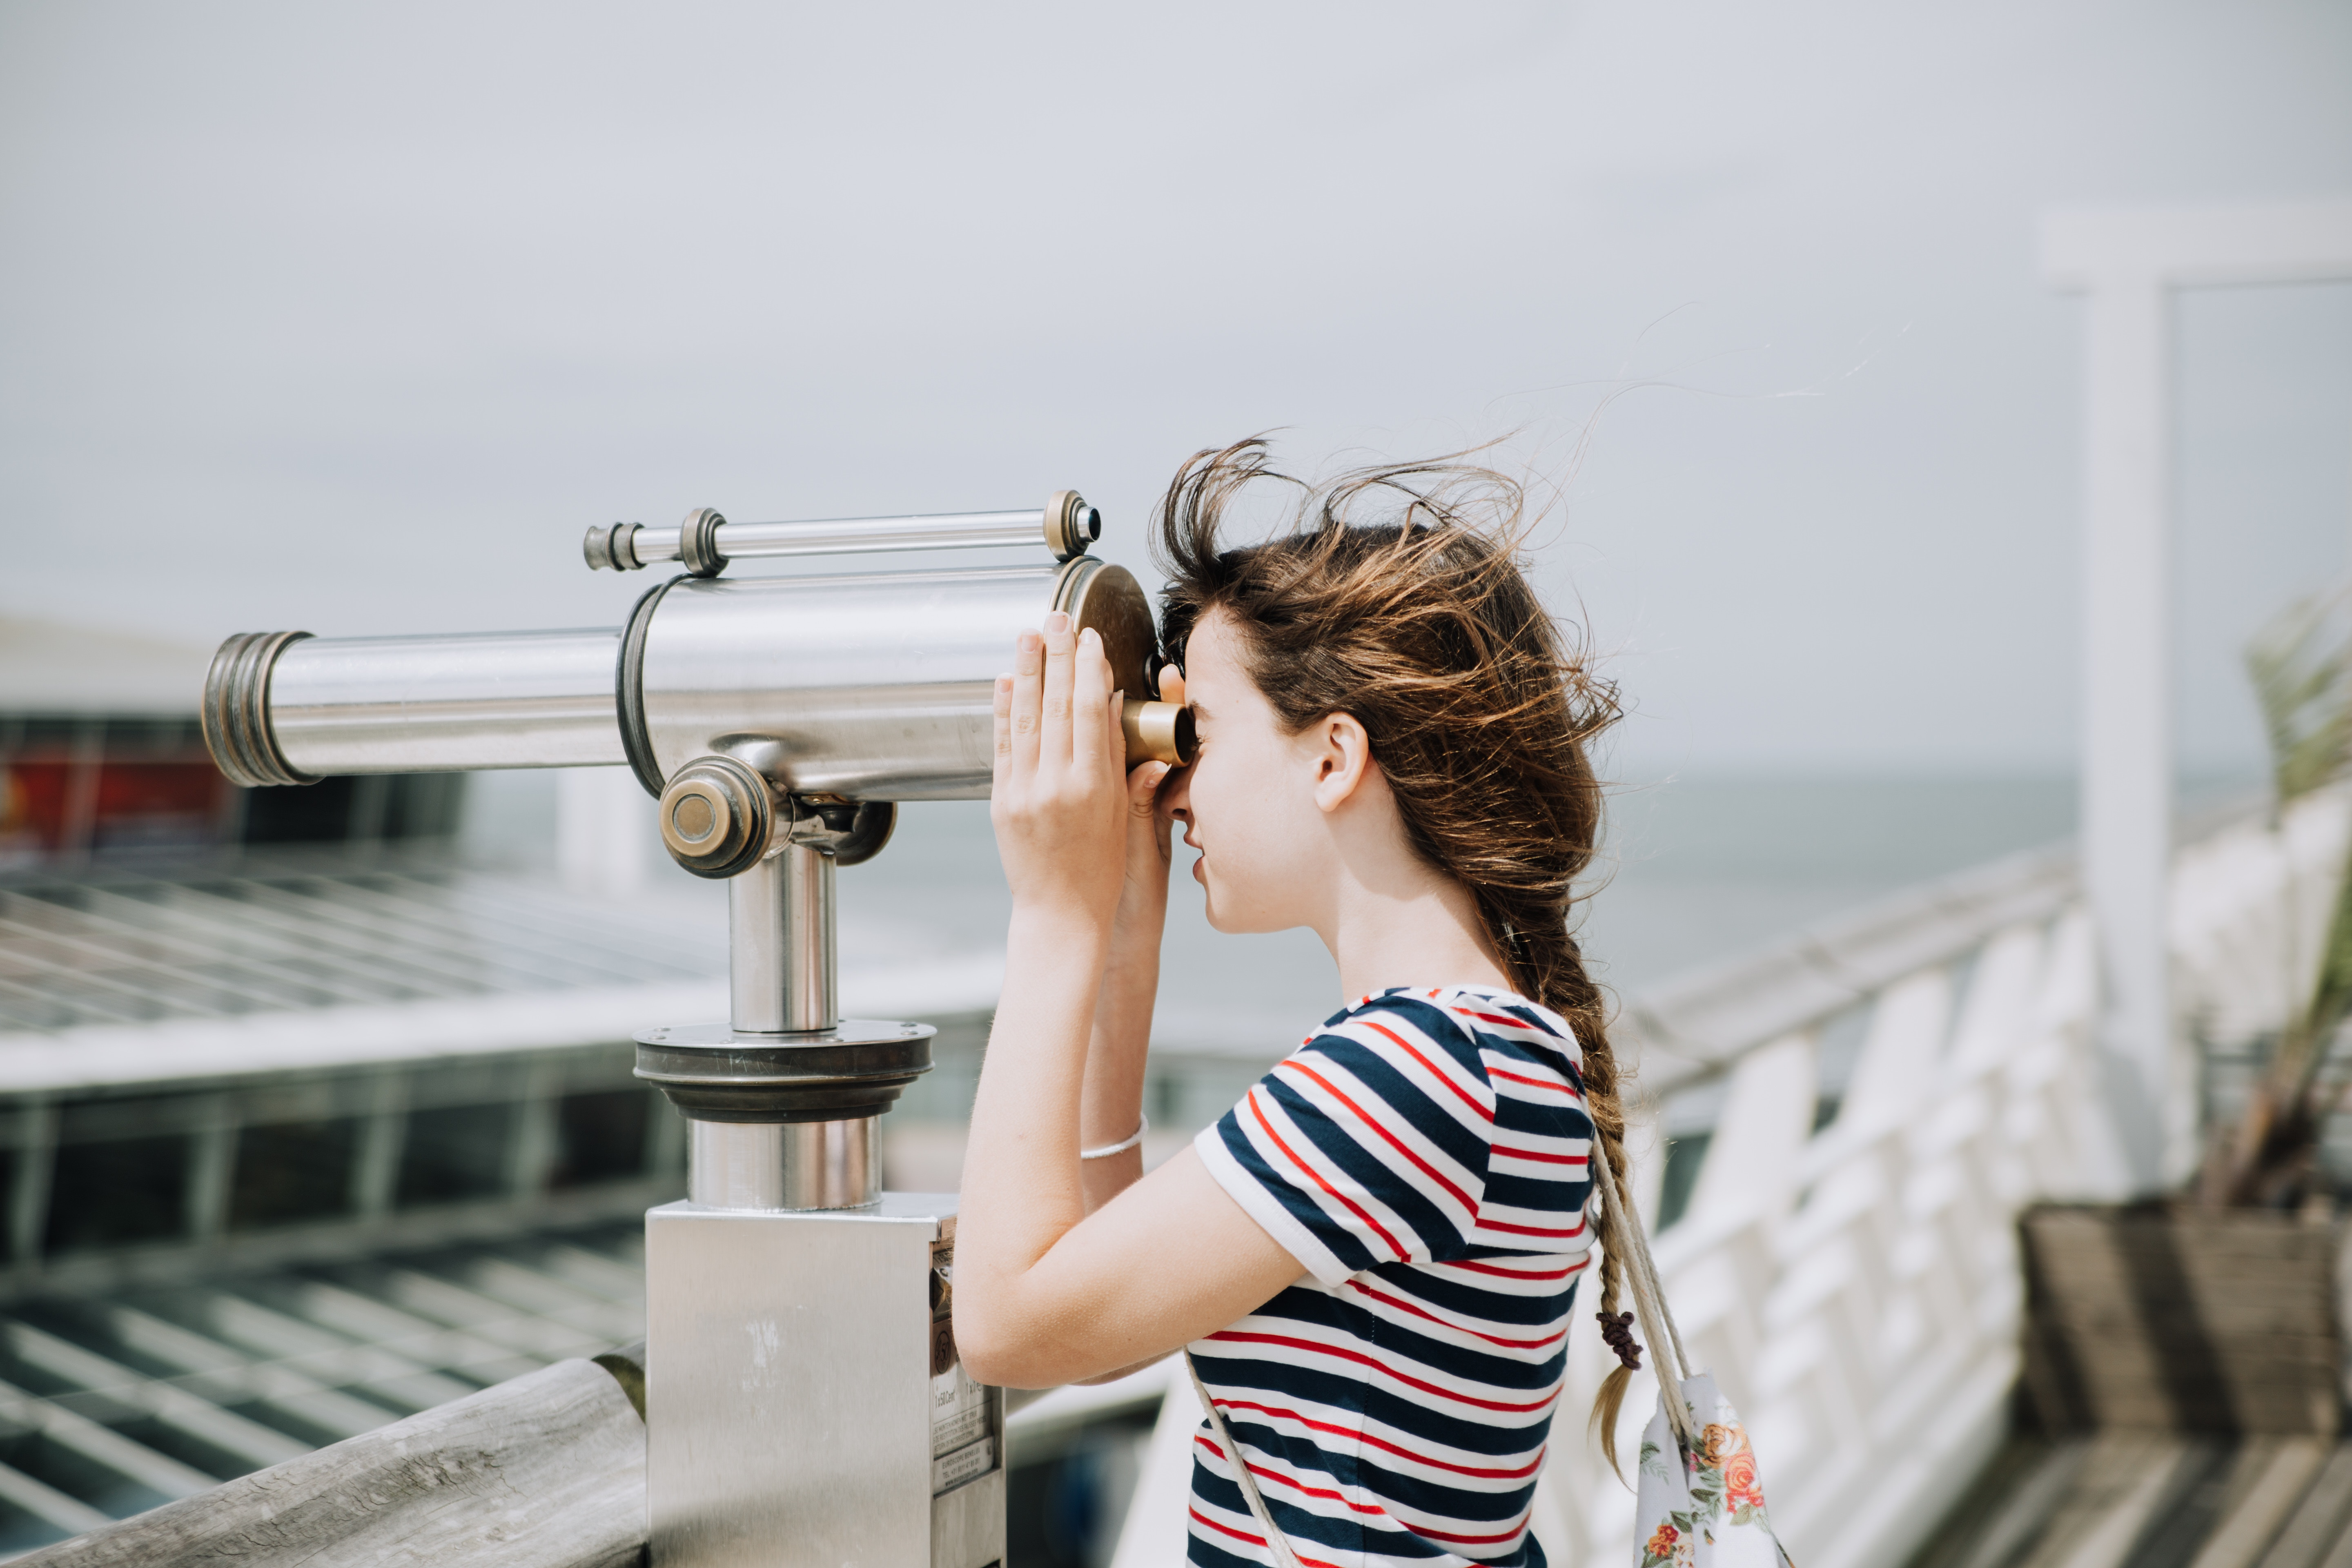 An employee with different abilities enjoys new perspectives by the seaside.